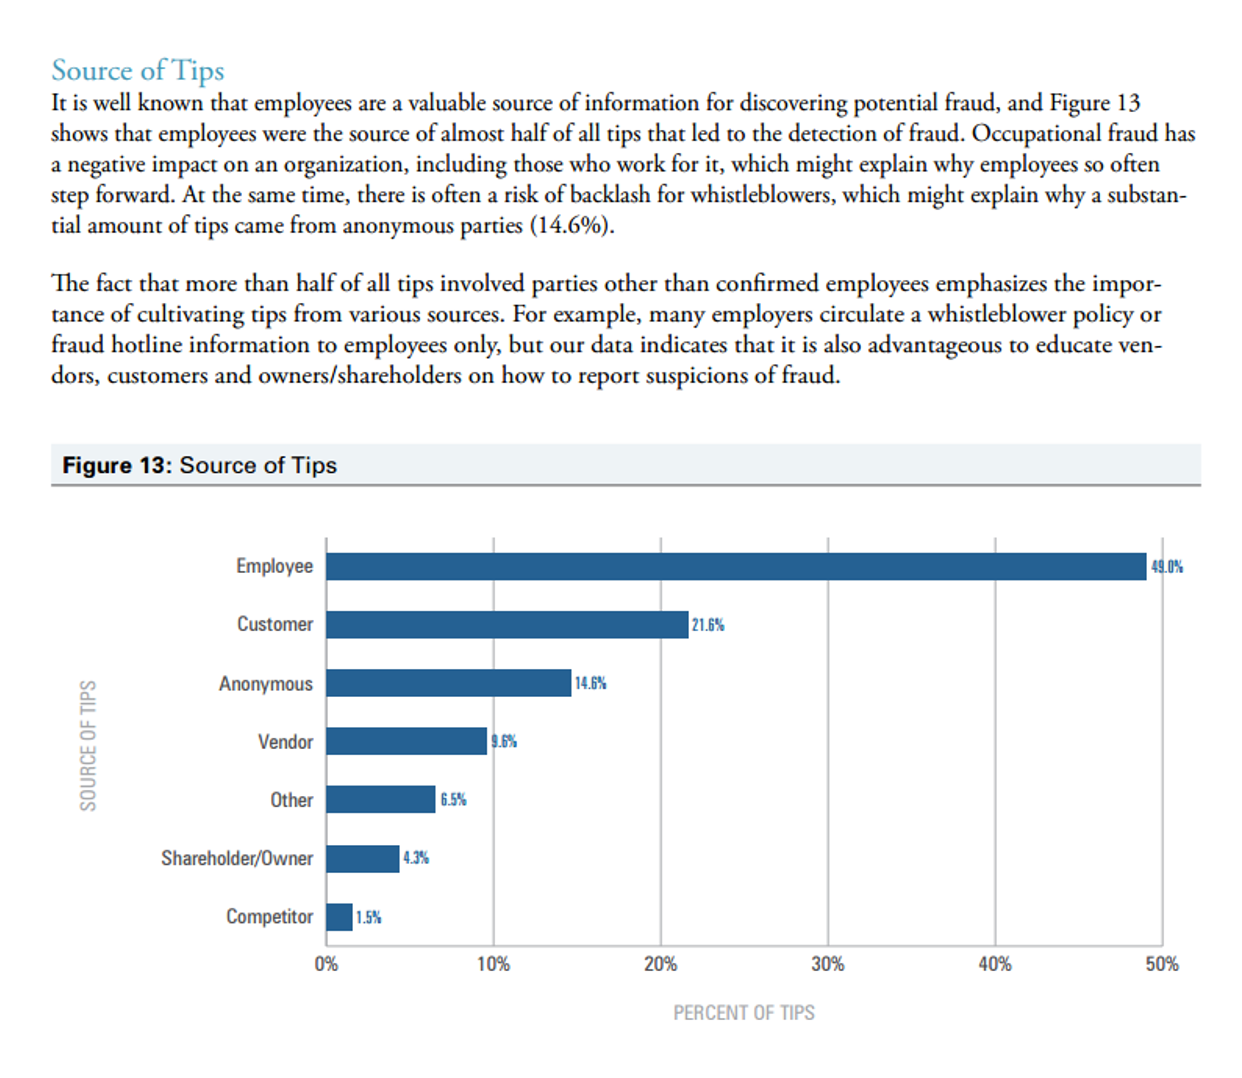 Table and text shows the highest percentage of whistleblower tips reported comes from employees (49%).